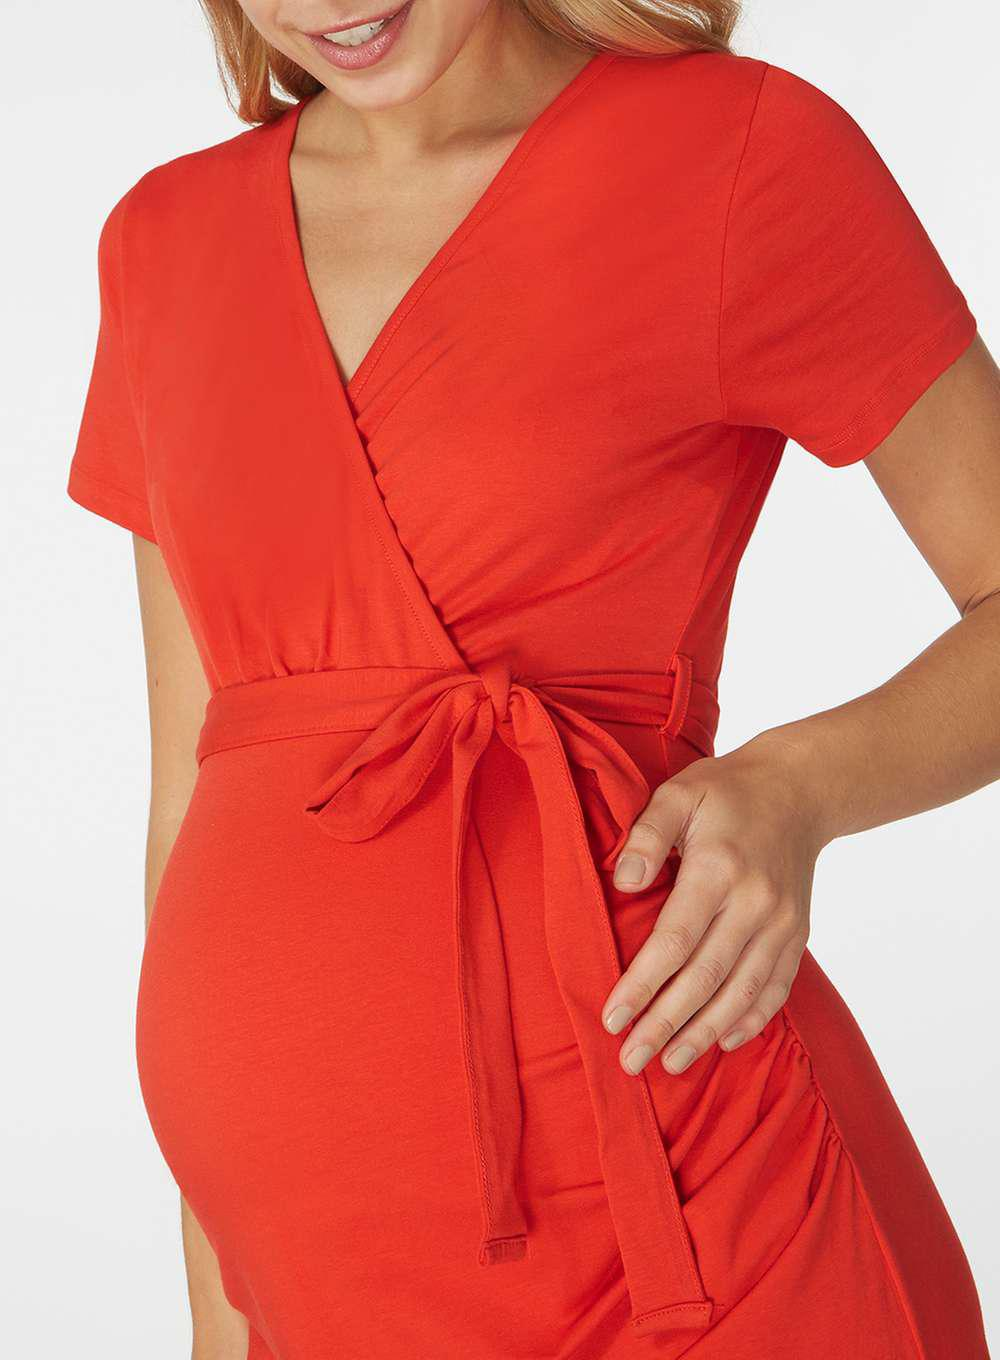 ea866e09c29fd Lyst - Dorothy Perkins Maternity Red Short Sleeve Tie Wrap Dress in Red